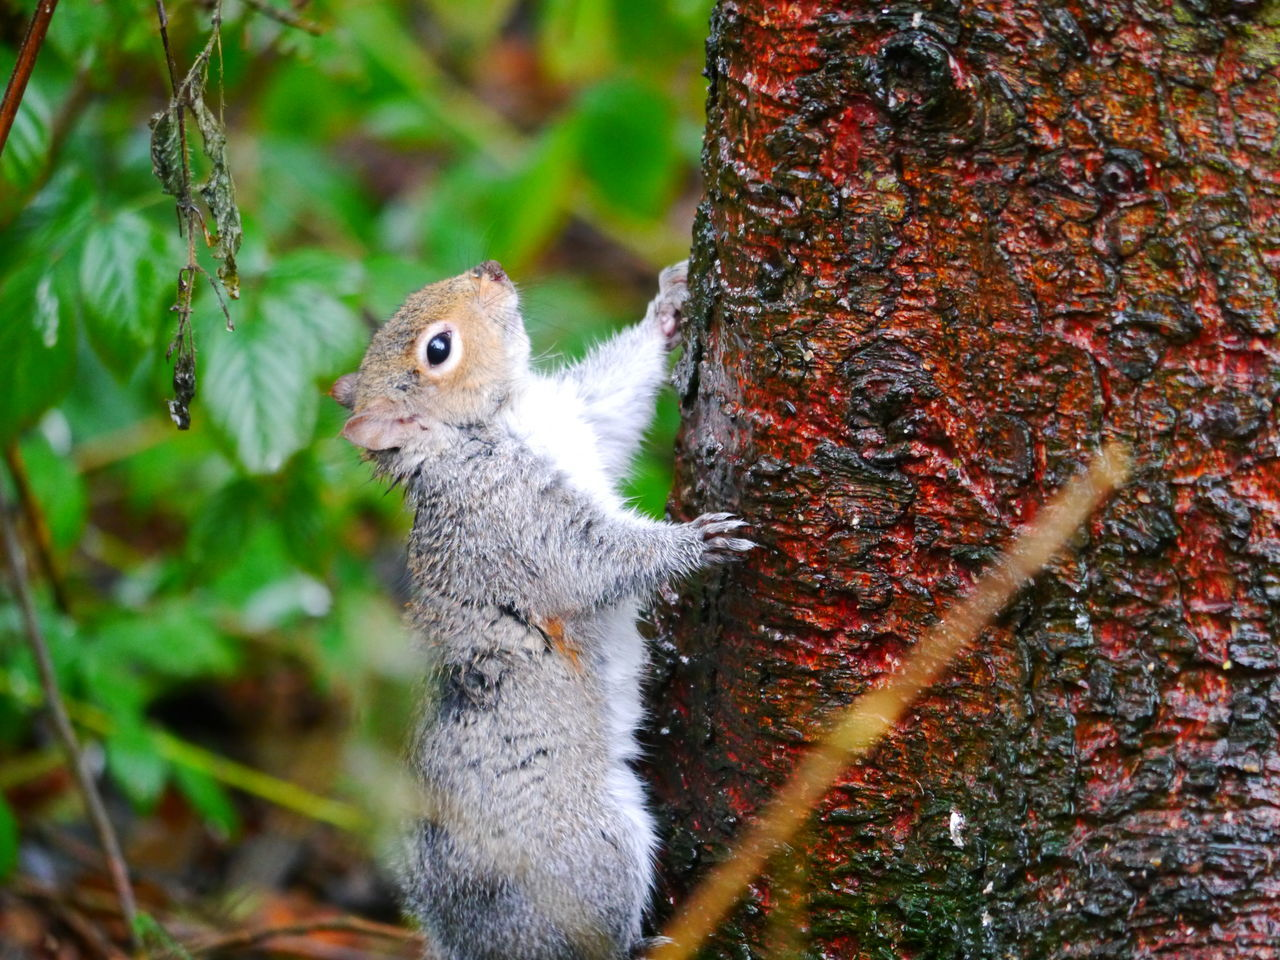 tree trunk, squirrel, one animal, rodent, animals in the wild, animal themes, tree, nature, outdoors, no people, day, animal wildlife, mammal, close-up